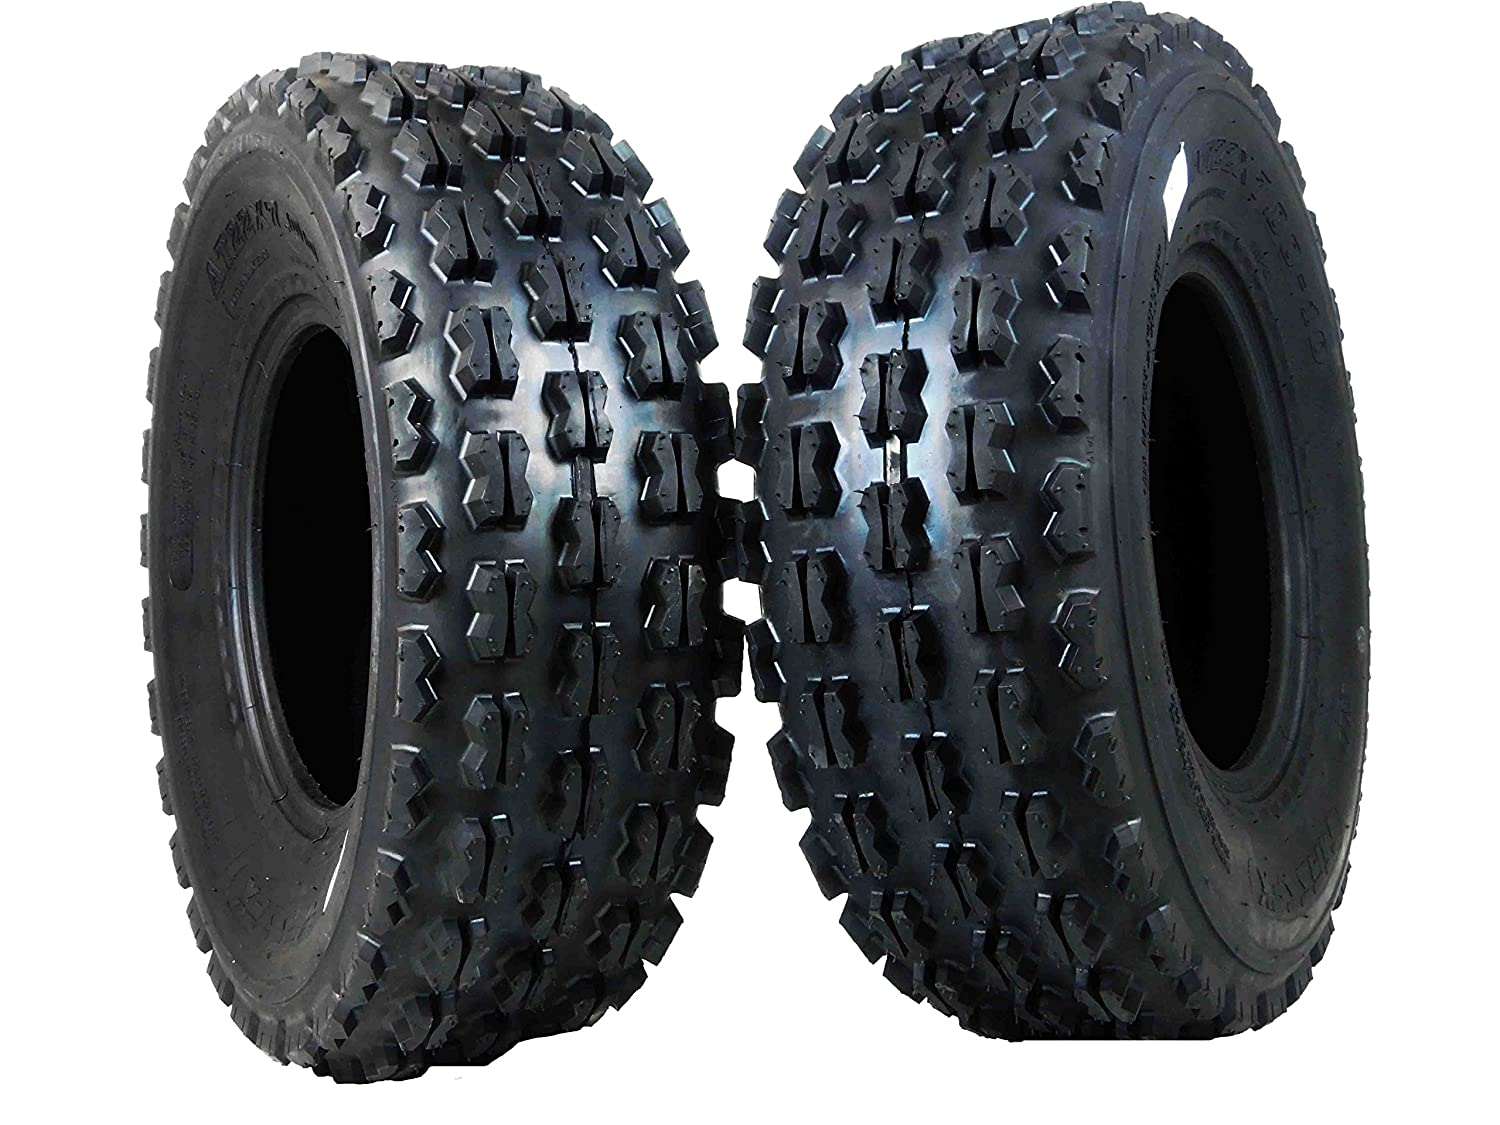 New MASSFX ATV Sport Quad Tires Two Front 21X7-10 4 Ply Tires For Yamaha Raptor Banshee Honda 400ex 450r 660 700 400 450 350 250 Set of 2 Front 21x7-10